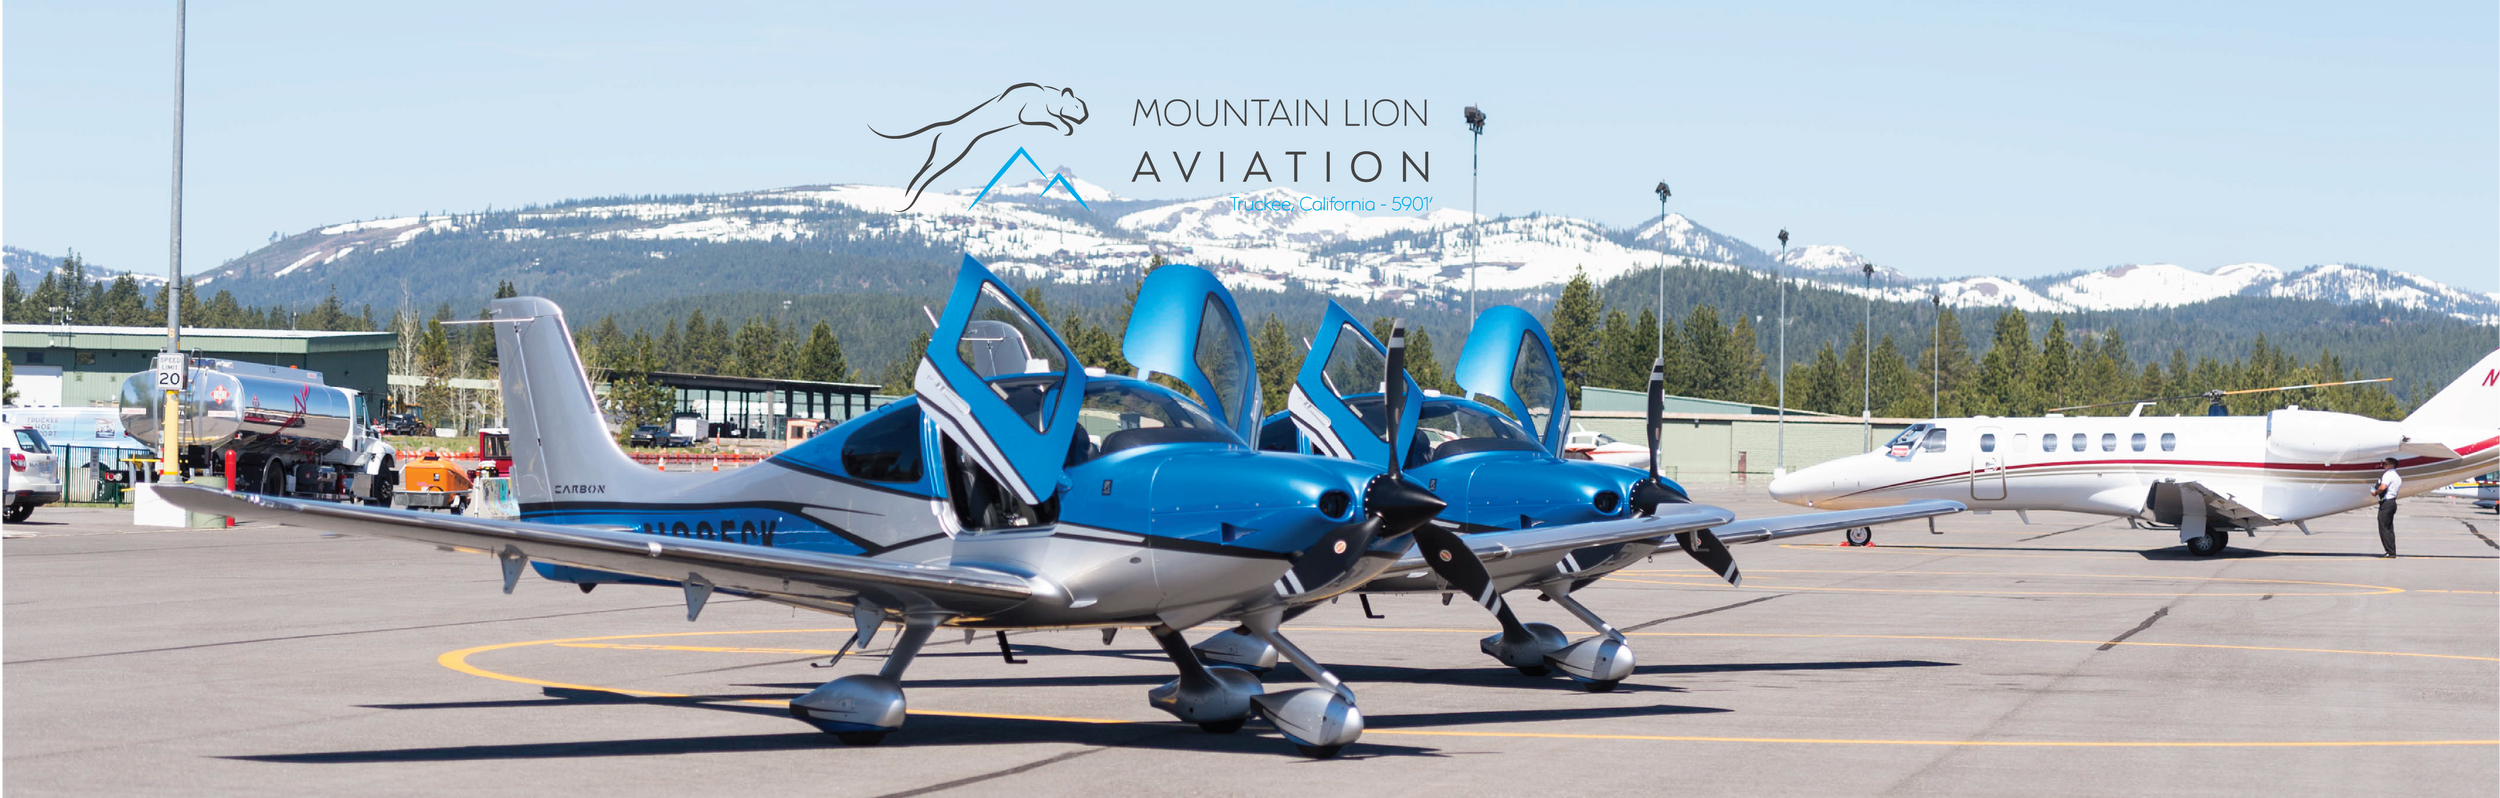 Northern California's #1 Private Air Charter - Mountain Lion